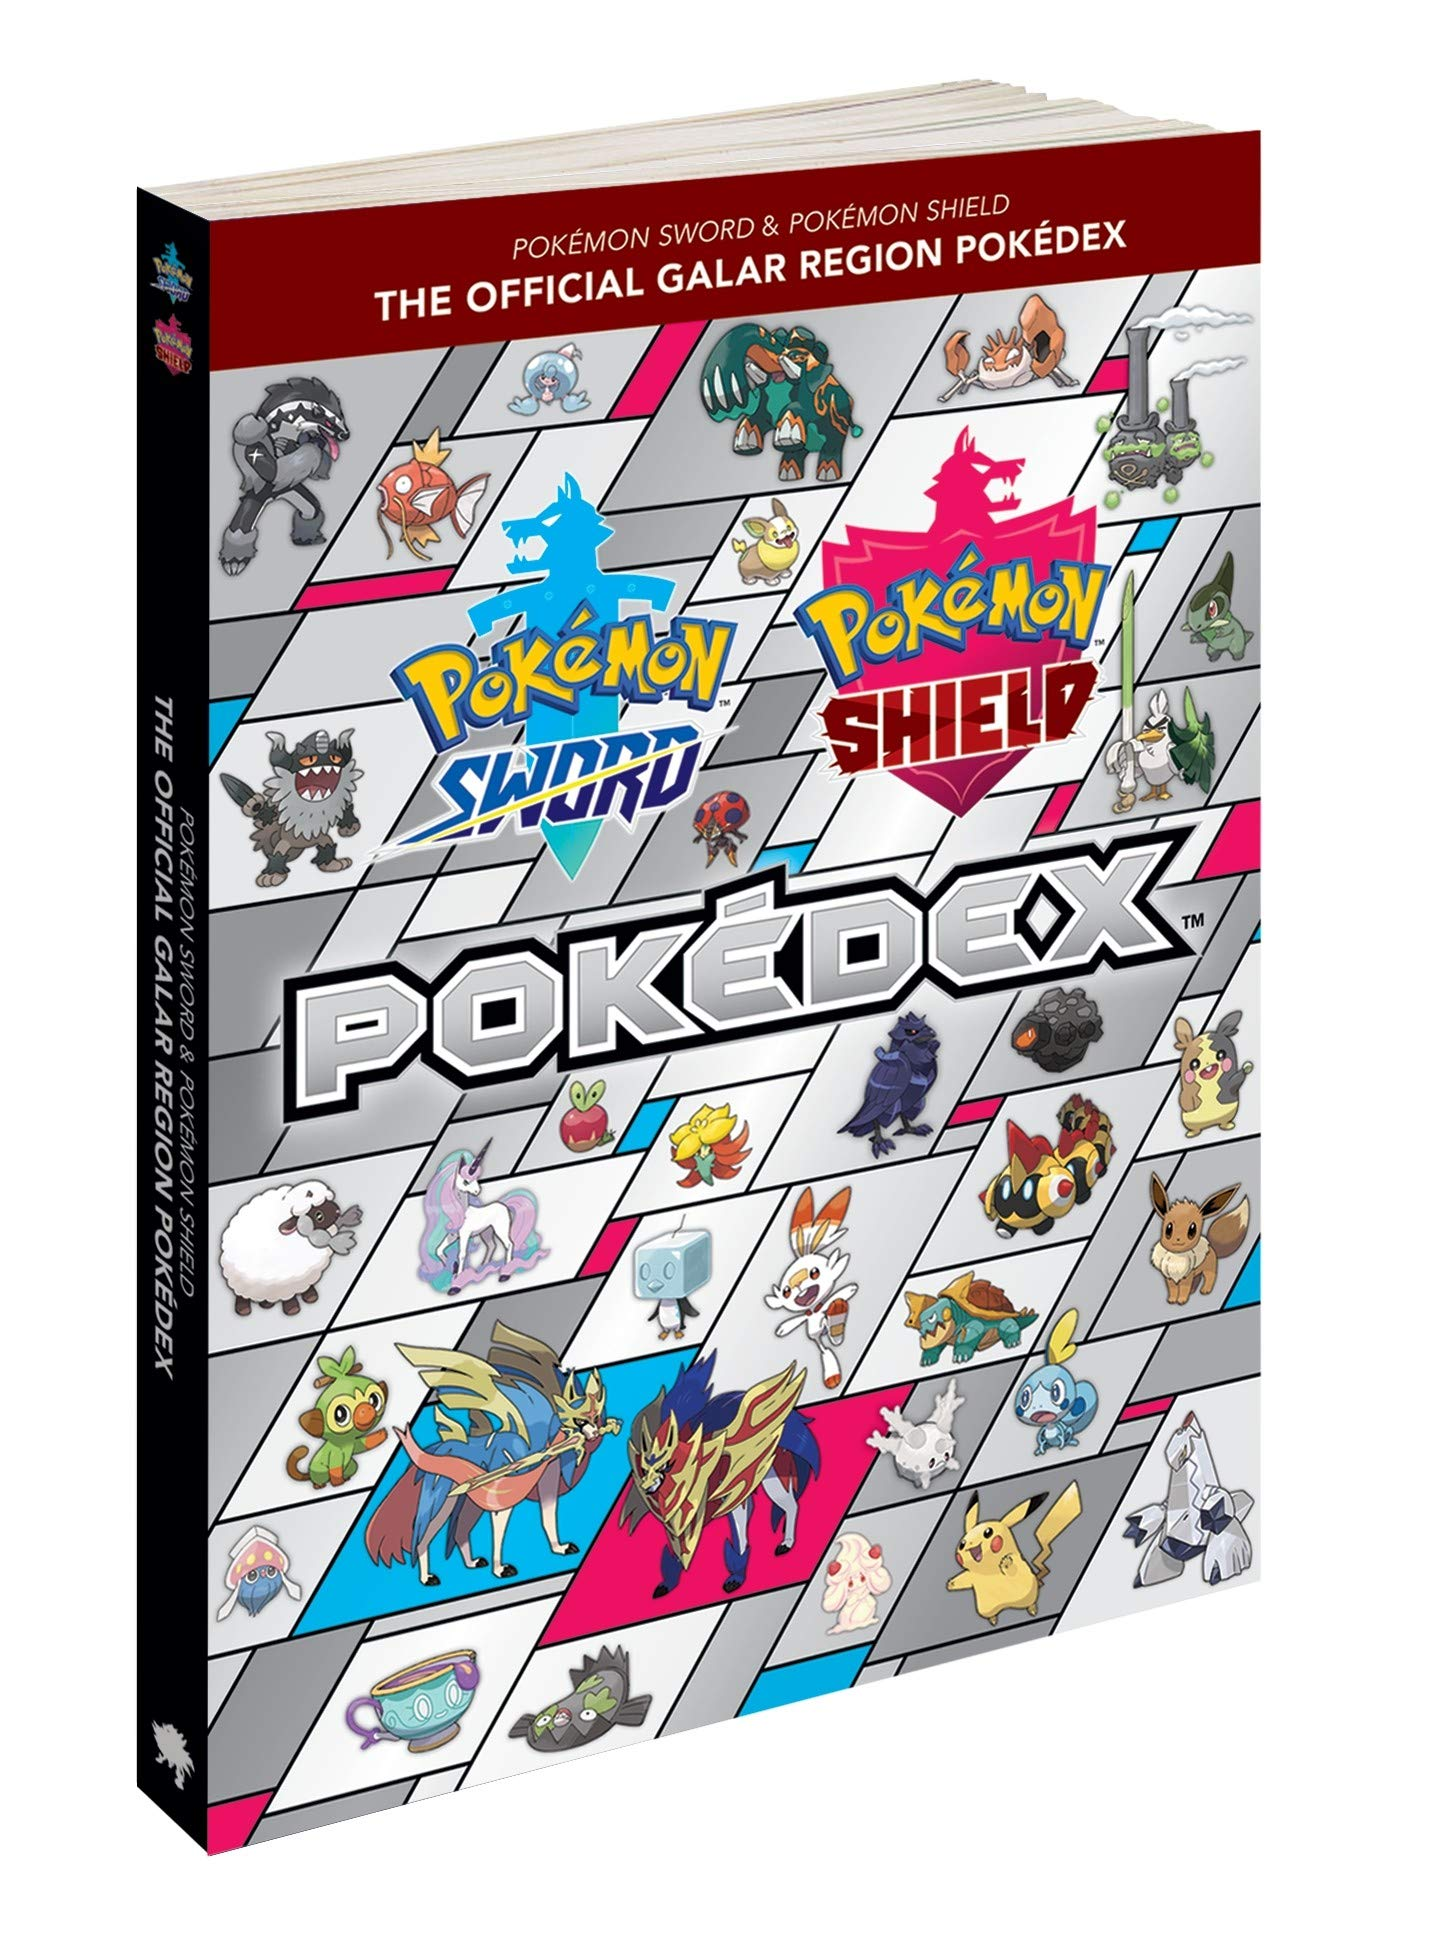 The Pokemon Sword & Pokemon Shield Pokémon Sword & Shield: Amazon.es: Libros en idiomas extranjeros